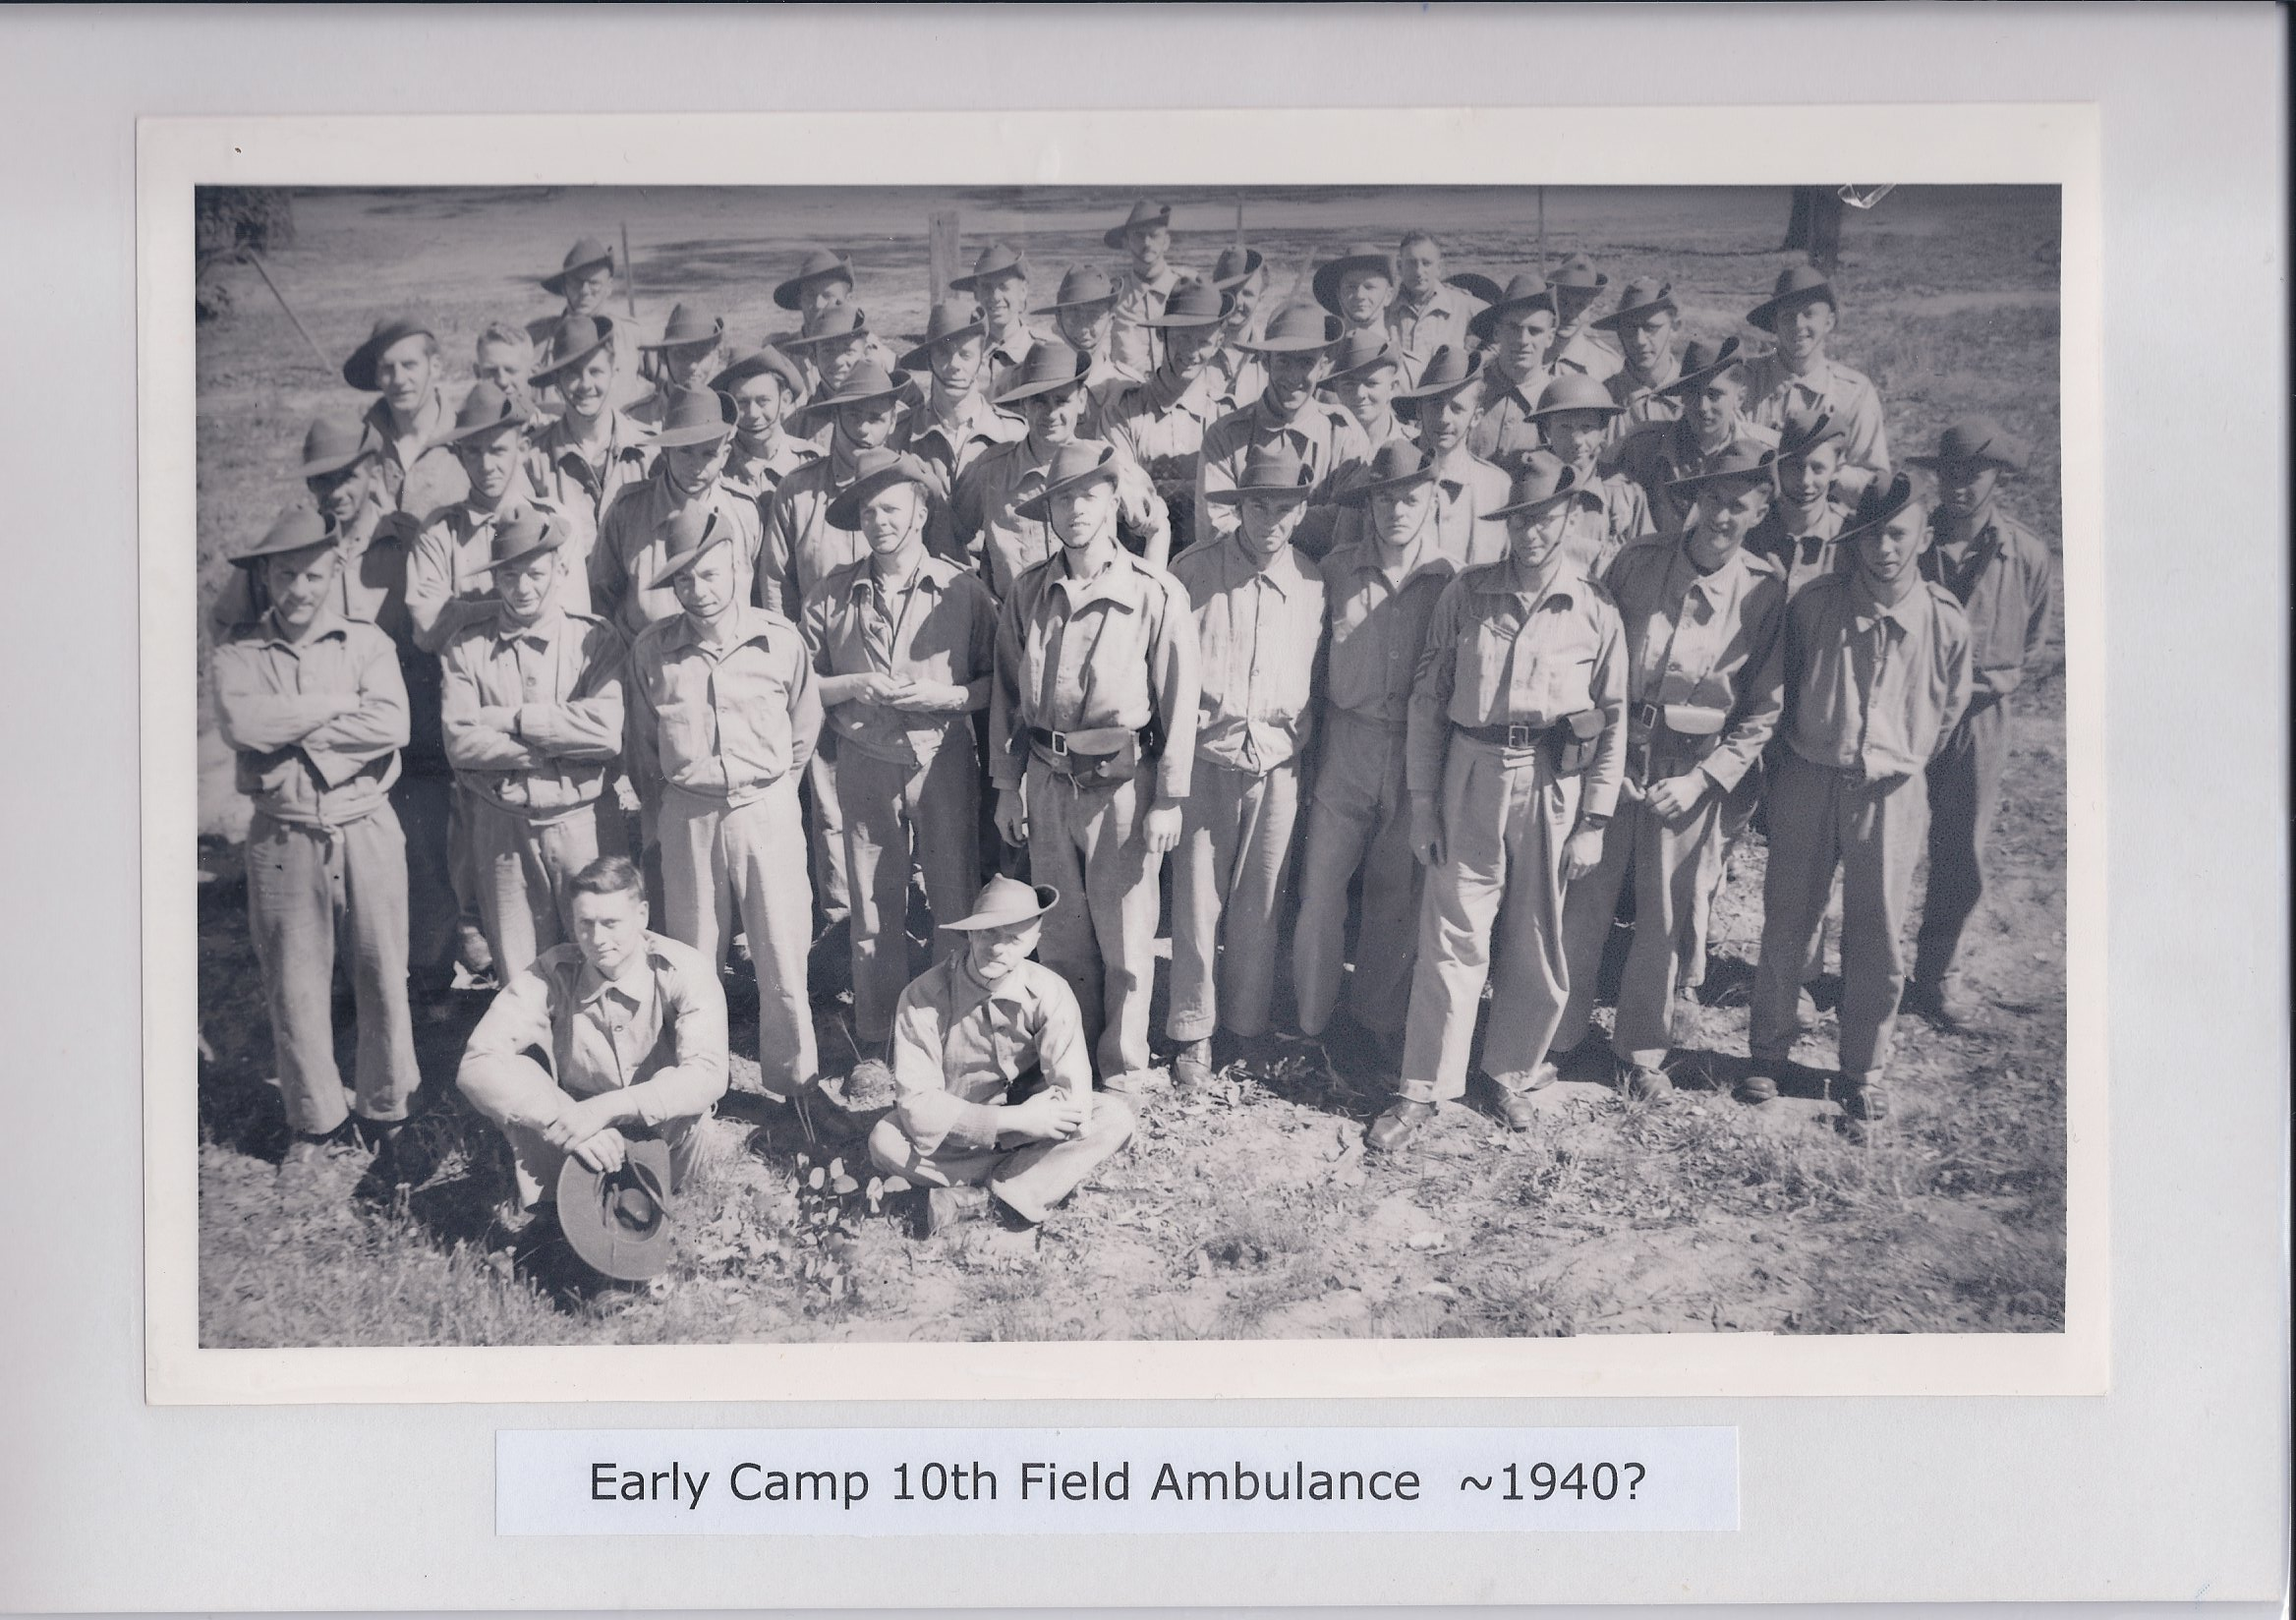 Early Camp 10th Field Ambulance ~ 1940?